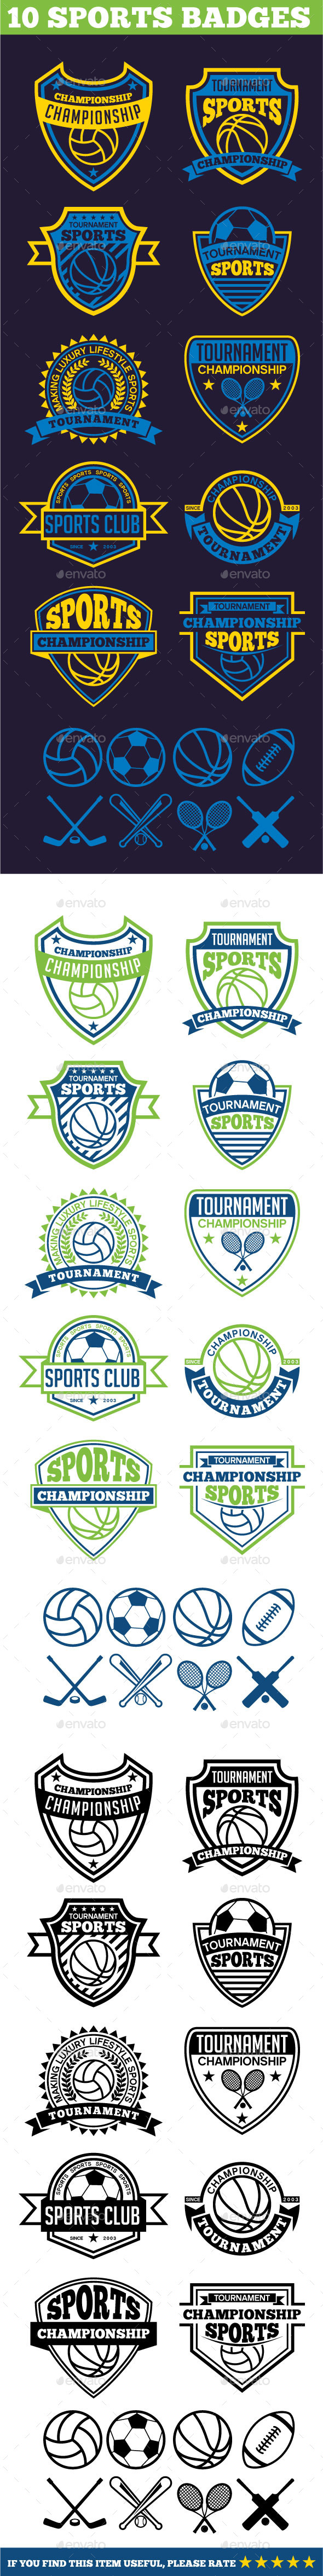 10 Sports Badges - Badges & Stickers Web Elements